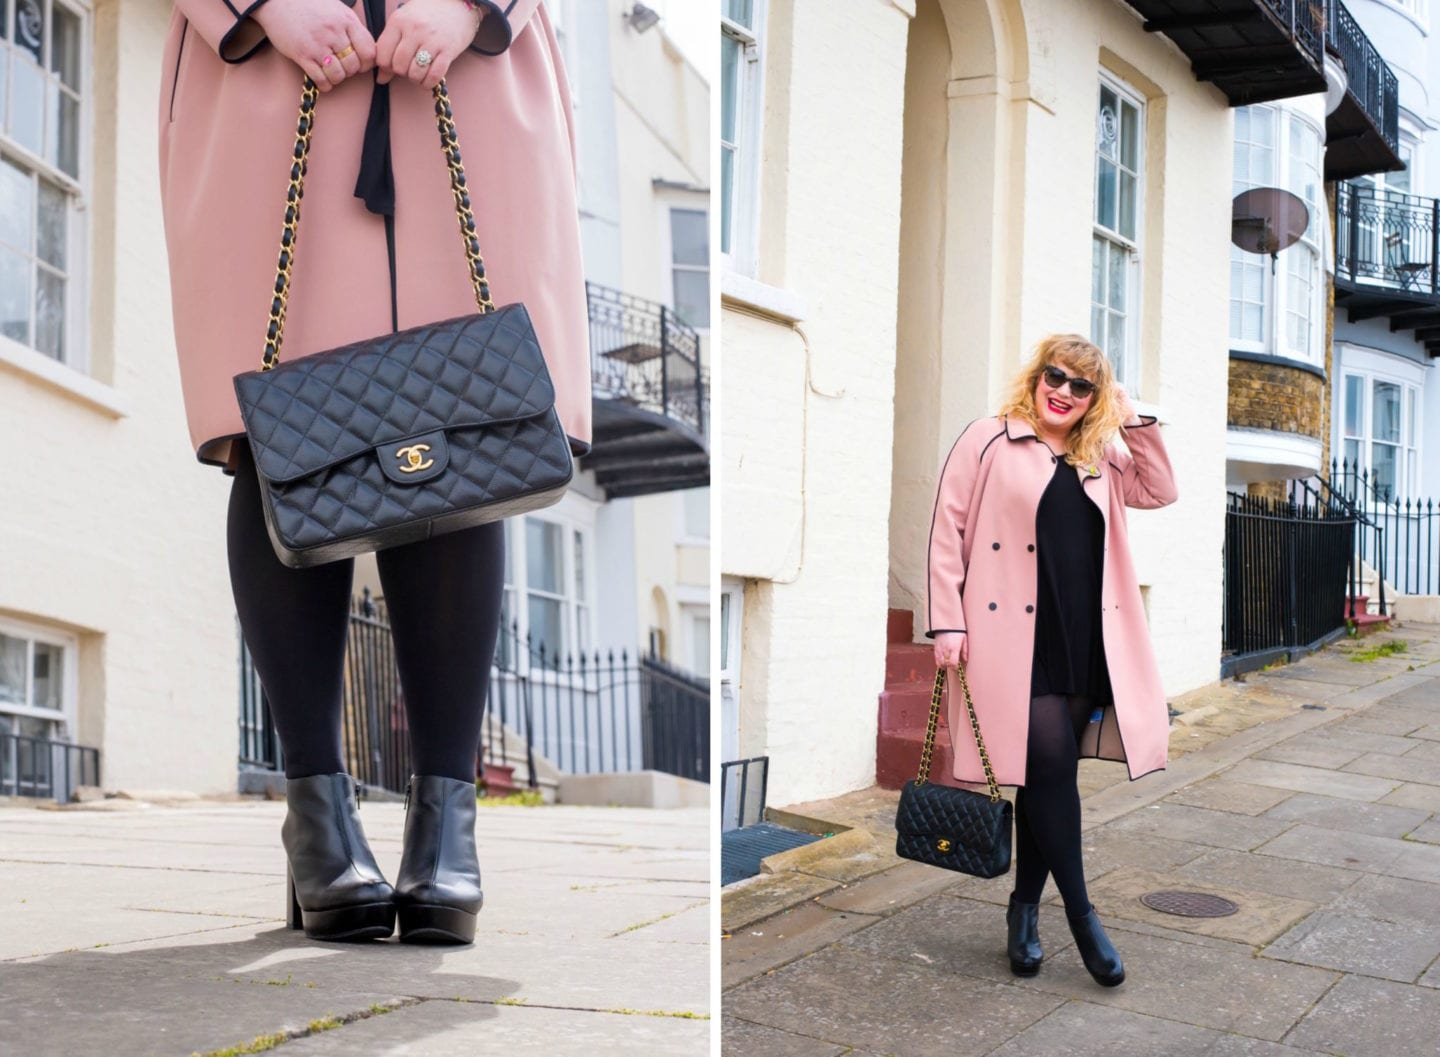 black chanel handbag with gold hardwear caviar leather and pink coat fashion blogger curve blogger blog style